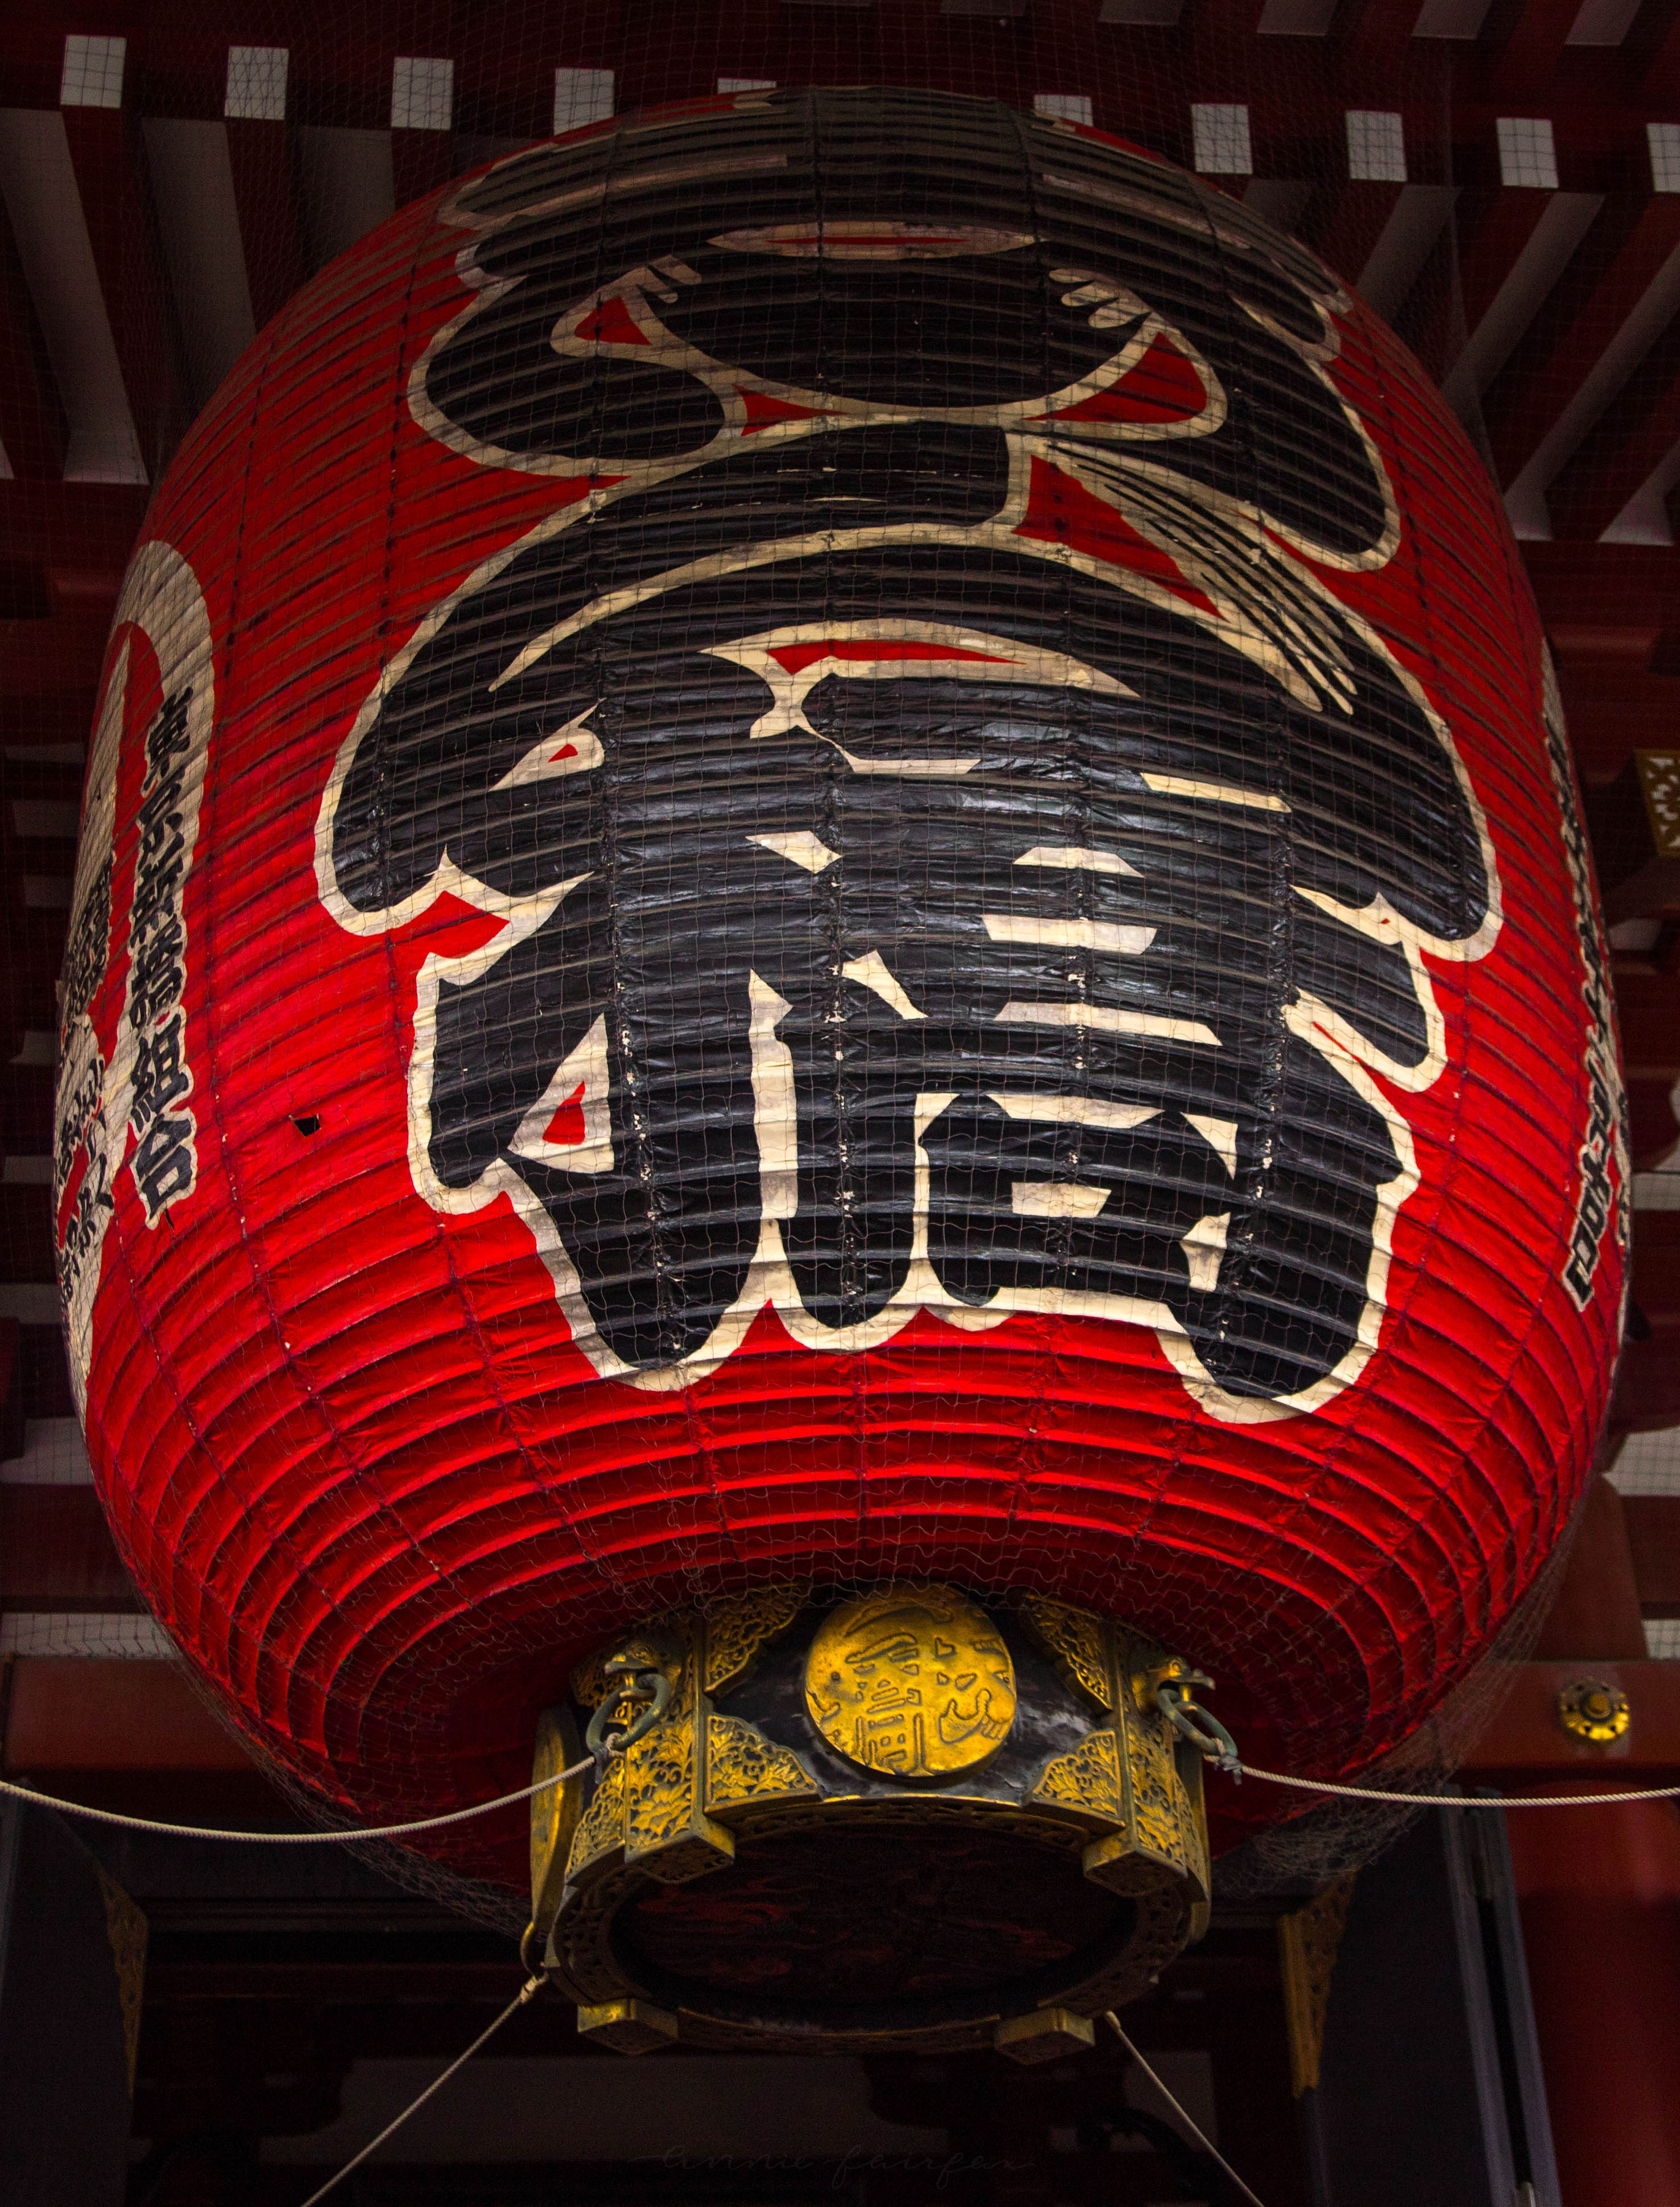 Big Red Lantern Senso-Ji Temple Asakusa Kannon Buddhist Temple in Tokyo, Japan Shrine with Massive Red Japanese Paper Lanterns Near Tokyo Sky Tree Goddess of Mercy by Annie Fairfax Where to Visit Tokyo Things to do In Tokyo, Japanese Travel Tourism Trip Inspiration Pictues of tokyo Japan